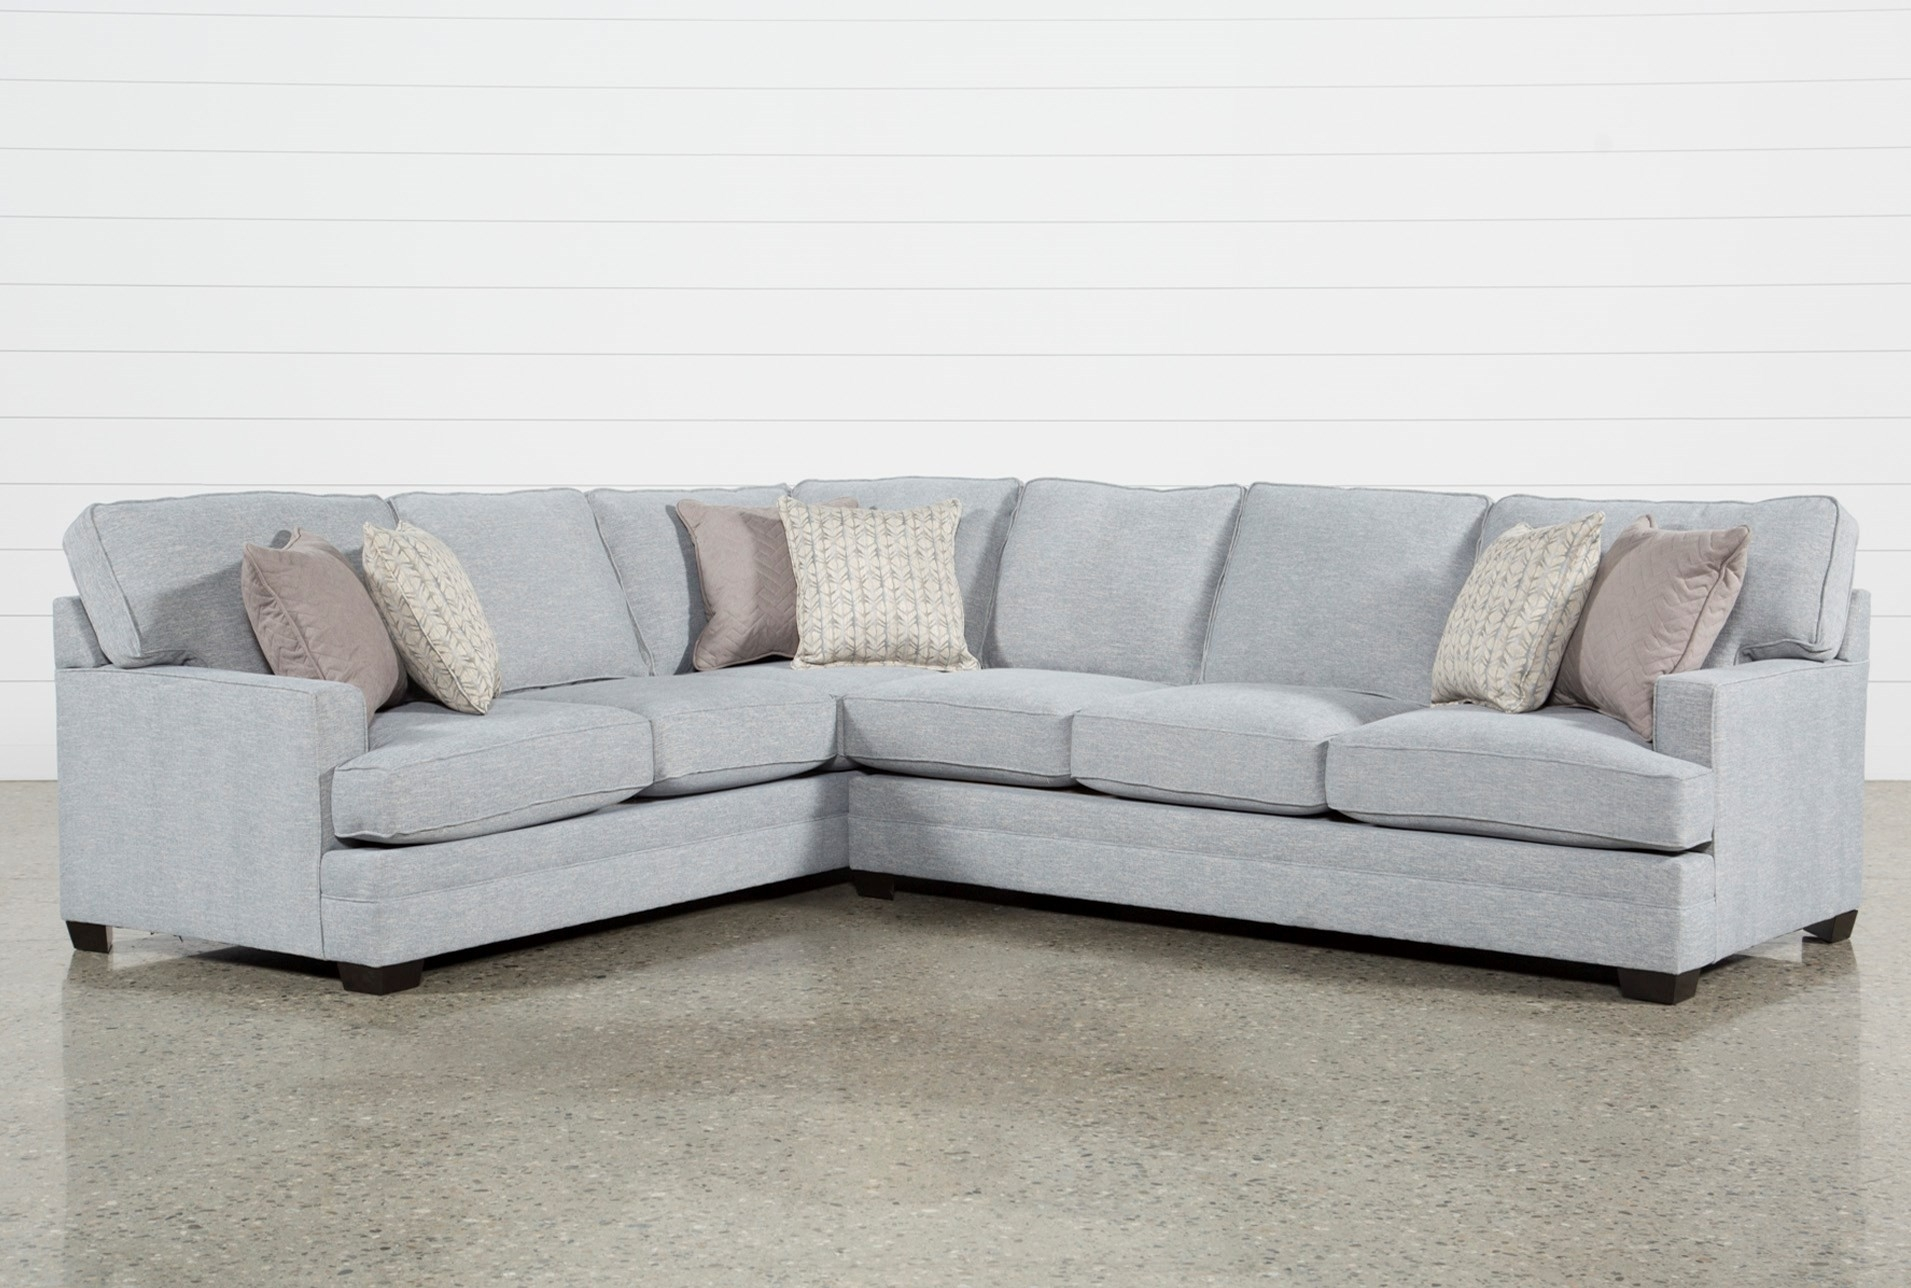 Living Spaces Sectional Cosmos Grey 2 Piece W Raf Chaise 206402 0 With Regard To Cosmos Grey 2 Piece Sectionals With Laf Chaise (Image 15 of 25)